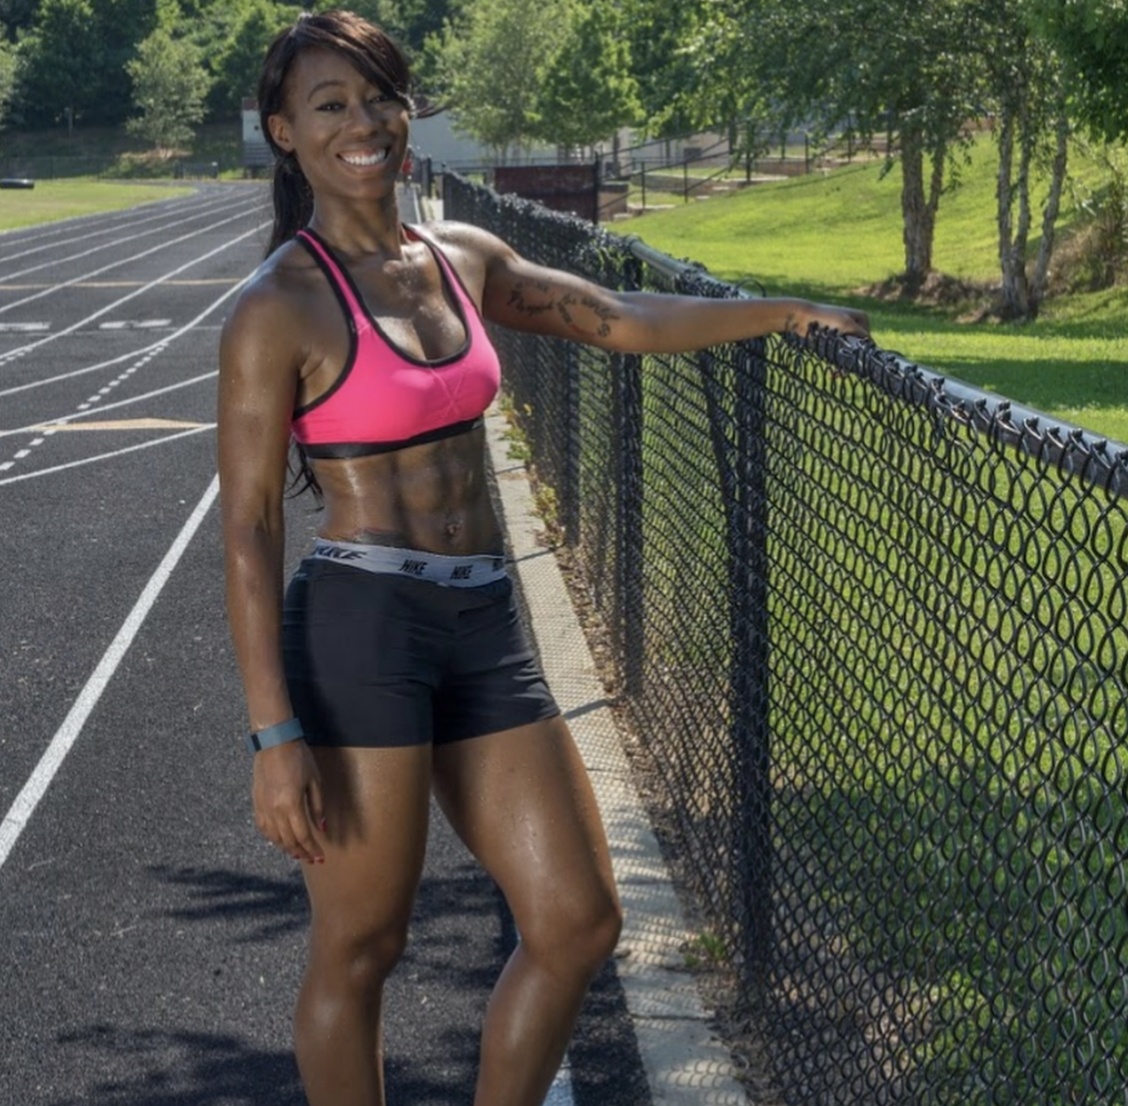 About the Author - Eboni W. is known for her empowering and energetic personality. This nationally-qualified NPC bikini competitor is not only a Zumba teaching, track running, arena football playing athlete with brains (B.S., ) but she's also the owner of a personal training company (NCCA certified) while currently working on her ACE. She remains dedicated to finding the time to train, learn, & coach while working one of the hardest jobs out there; being a mother!www.TheFittTeam.comThe F.I.T.T. Team